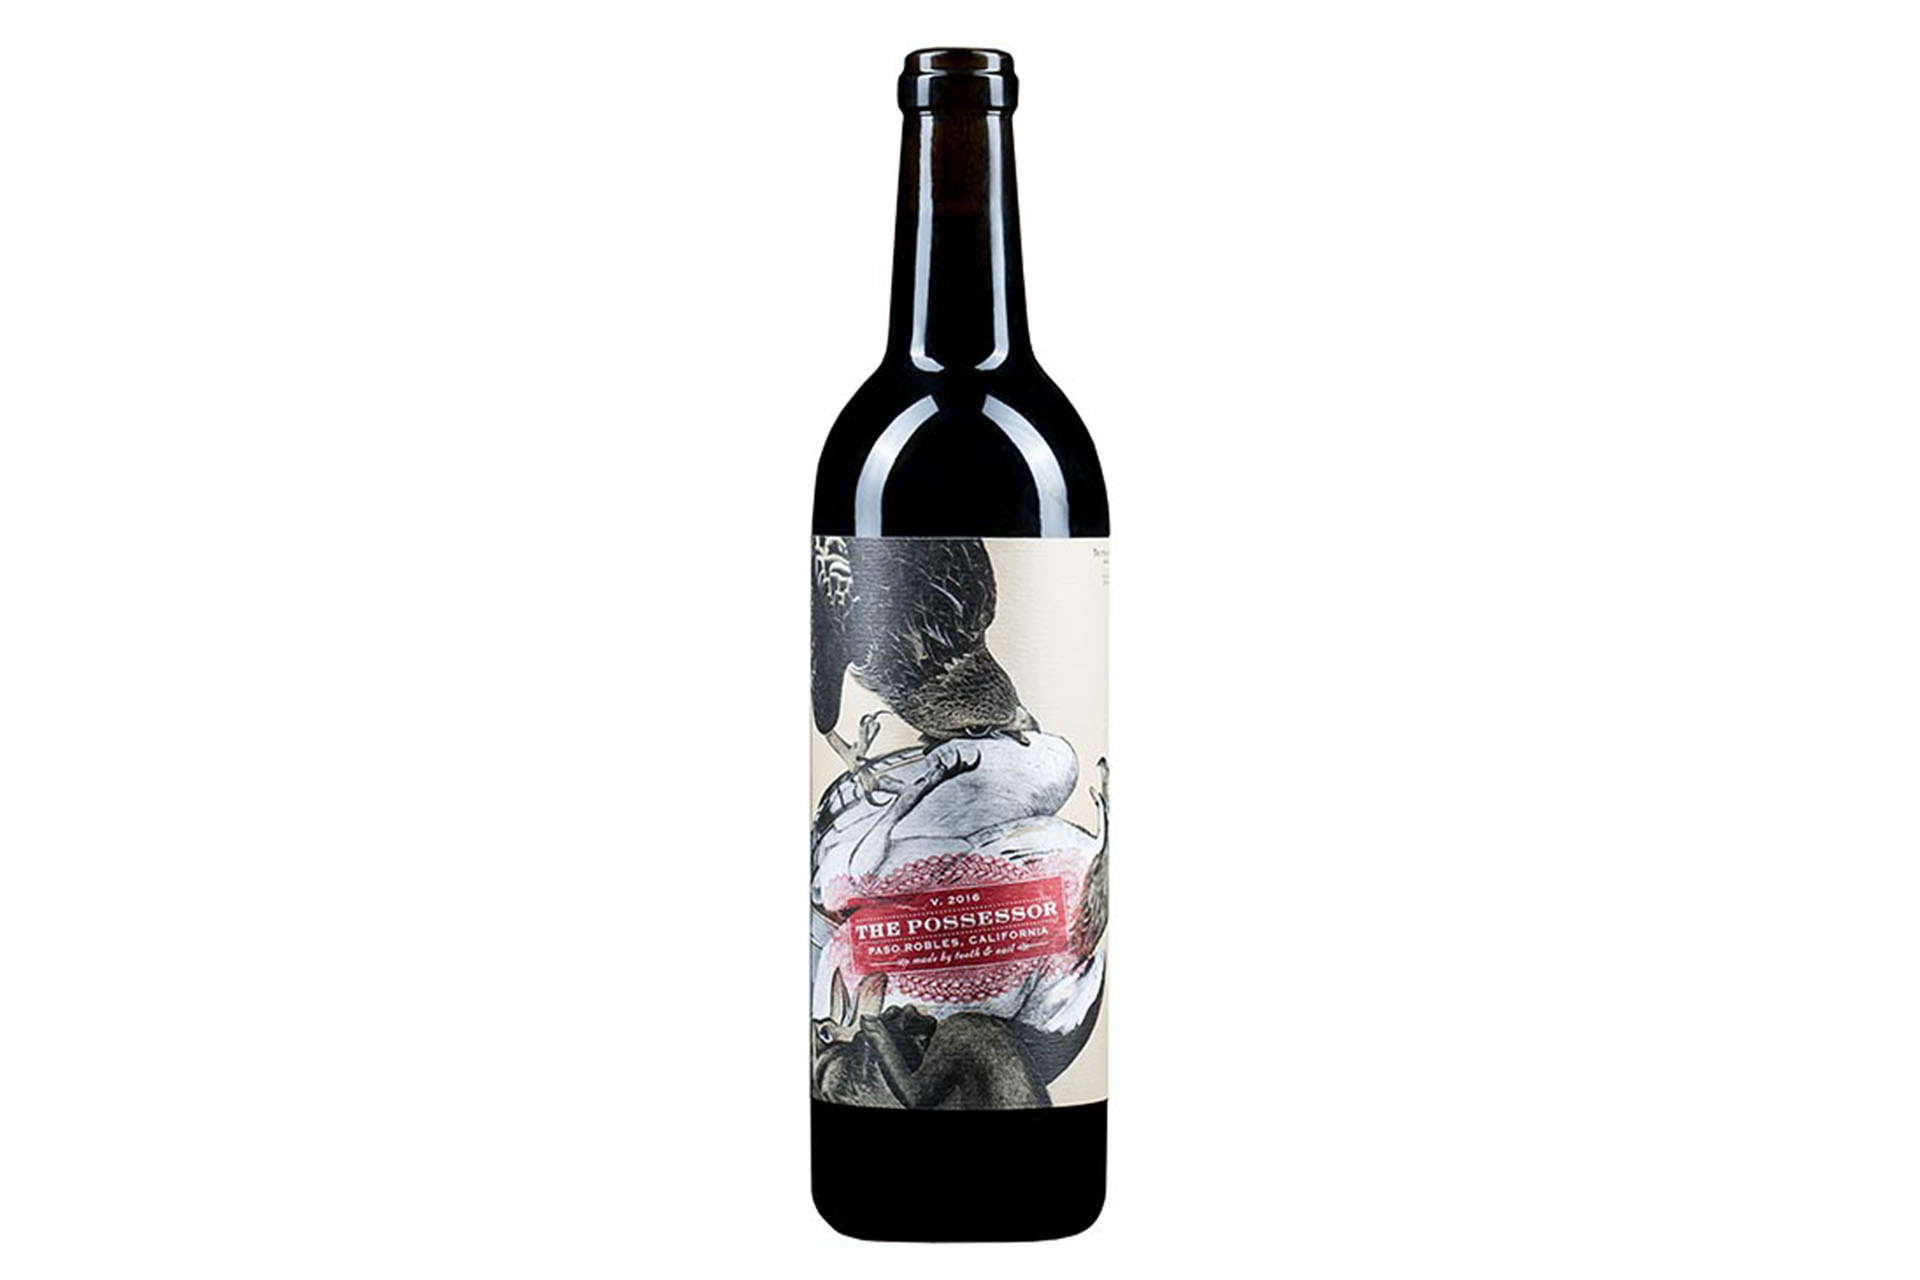 Tooth and Nail 2016 The Possessor Red